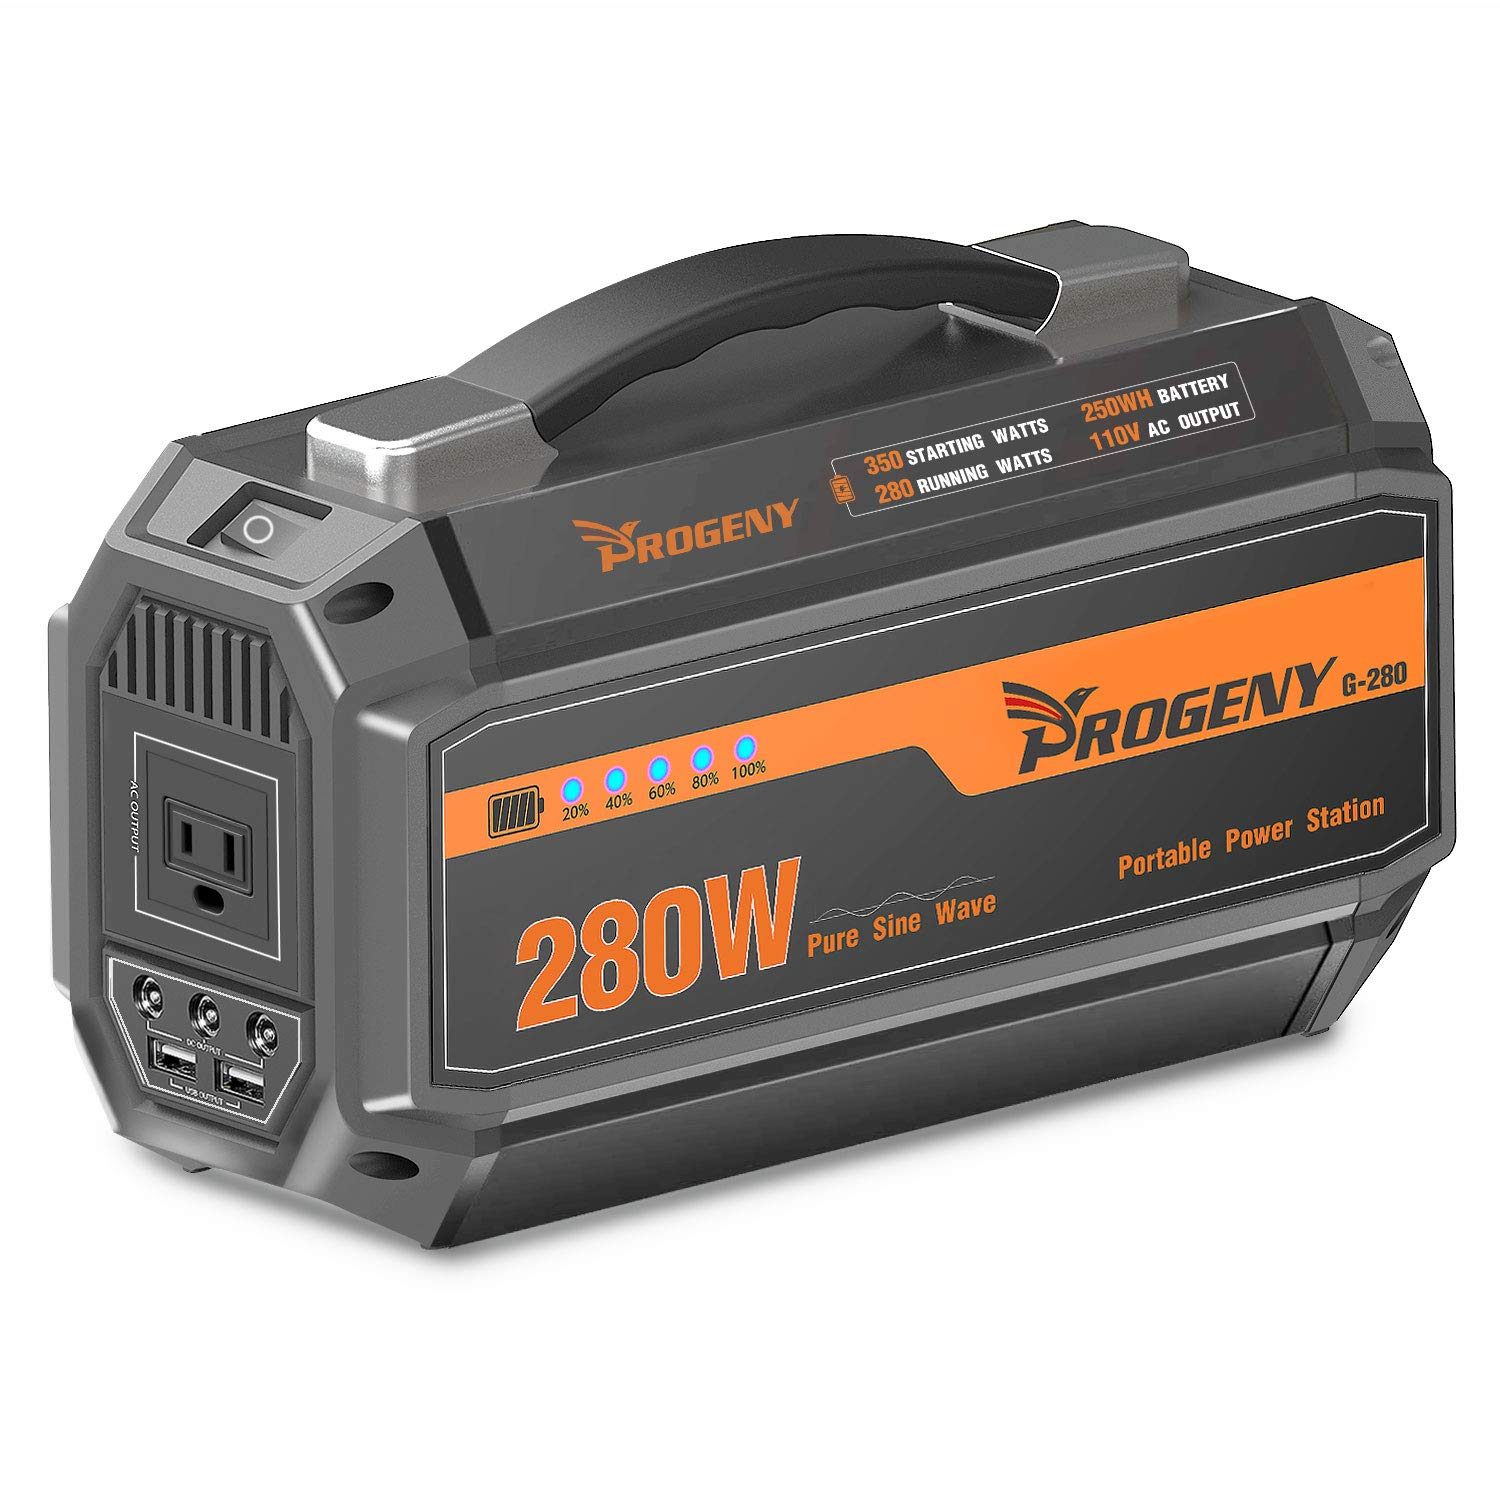 PROGENY 280W Generator Portable Power Station- [ Upgraded 250Wh / 67500mAh ]-Lithium Battery Pack Supply with 110V AC Outlet, 3 DC 12V Ports, 2 USB, Solar Generators for Camping CPAP Emergency Home